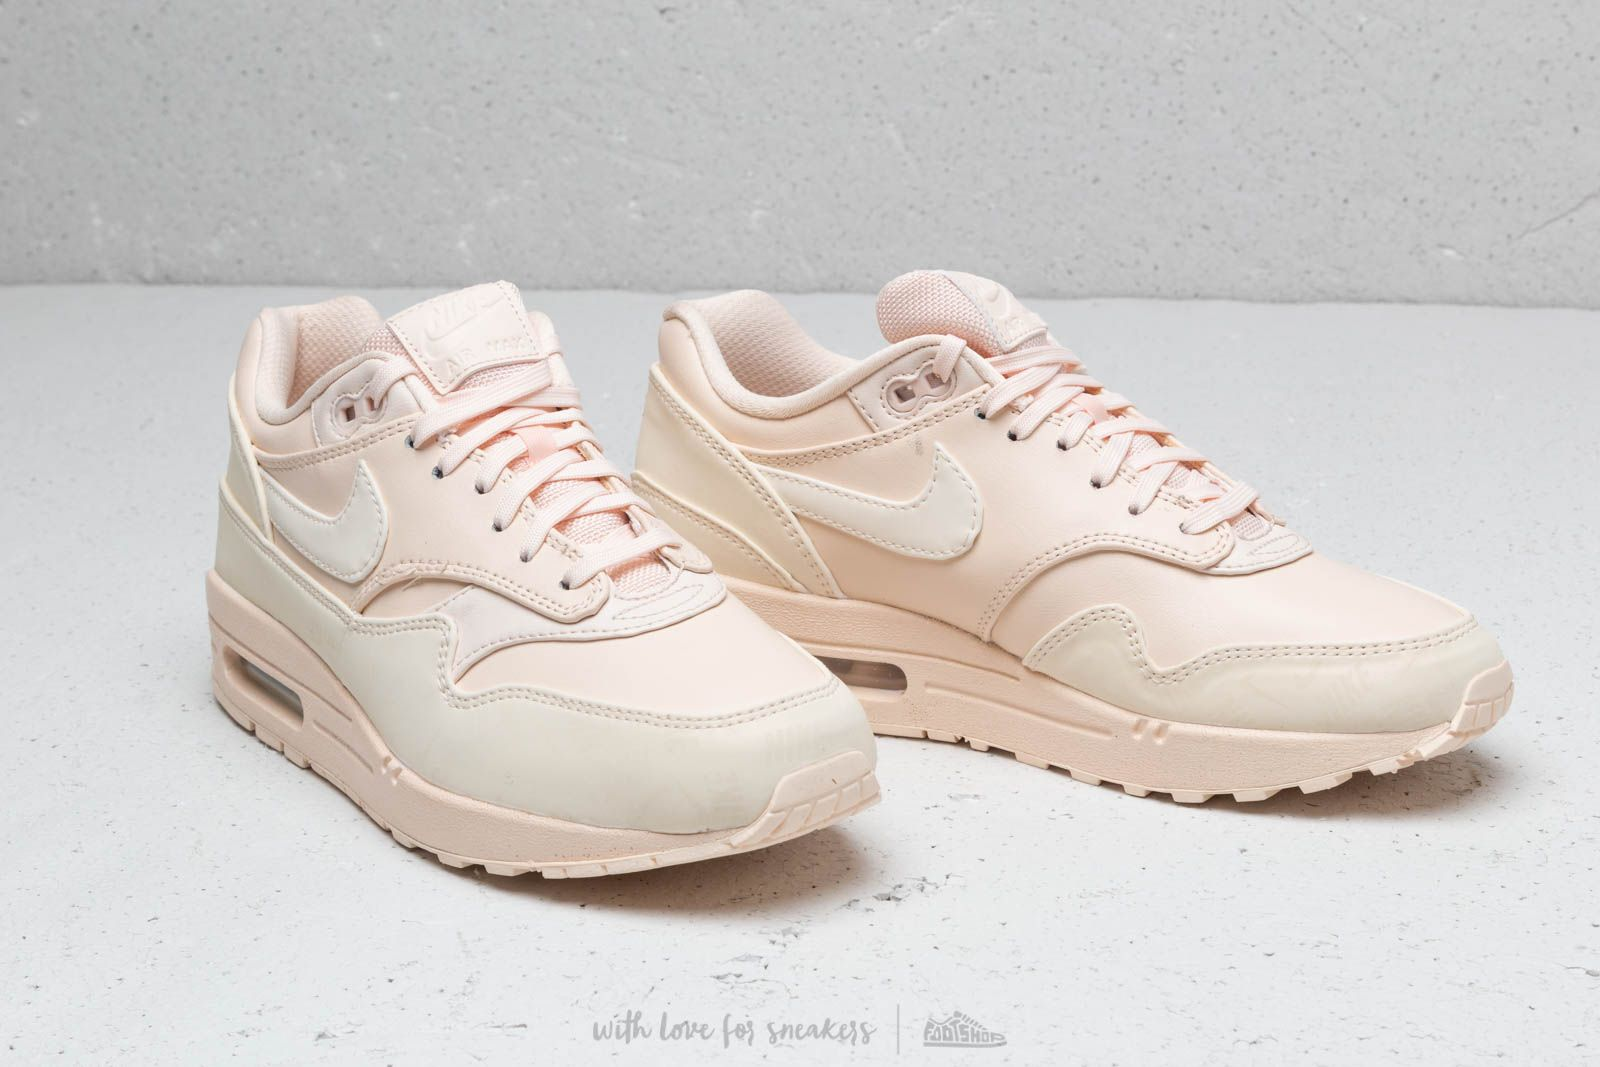 Nike Wmns Air Max 1 LX Guava Ice Guava Ice Guava Ice   Footshop